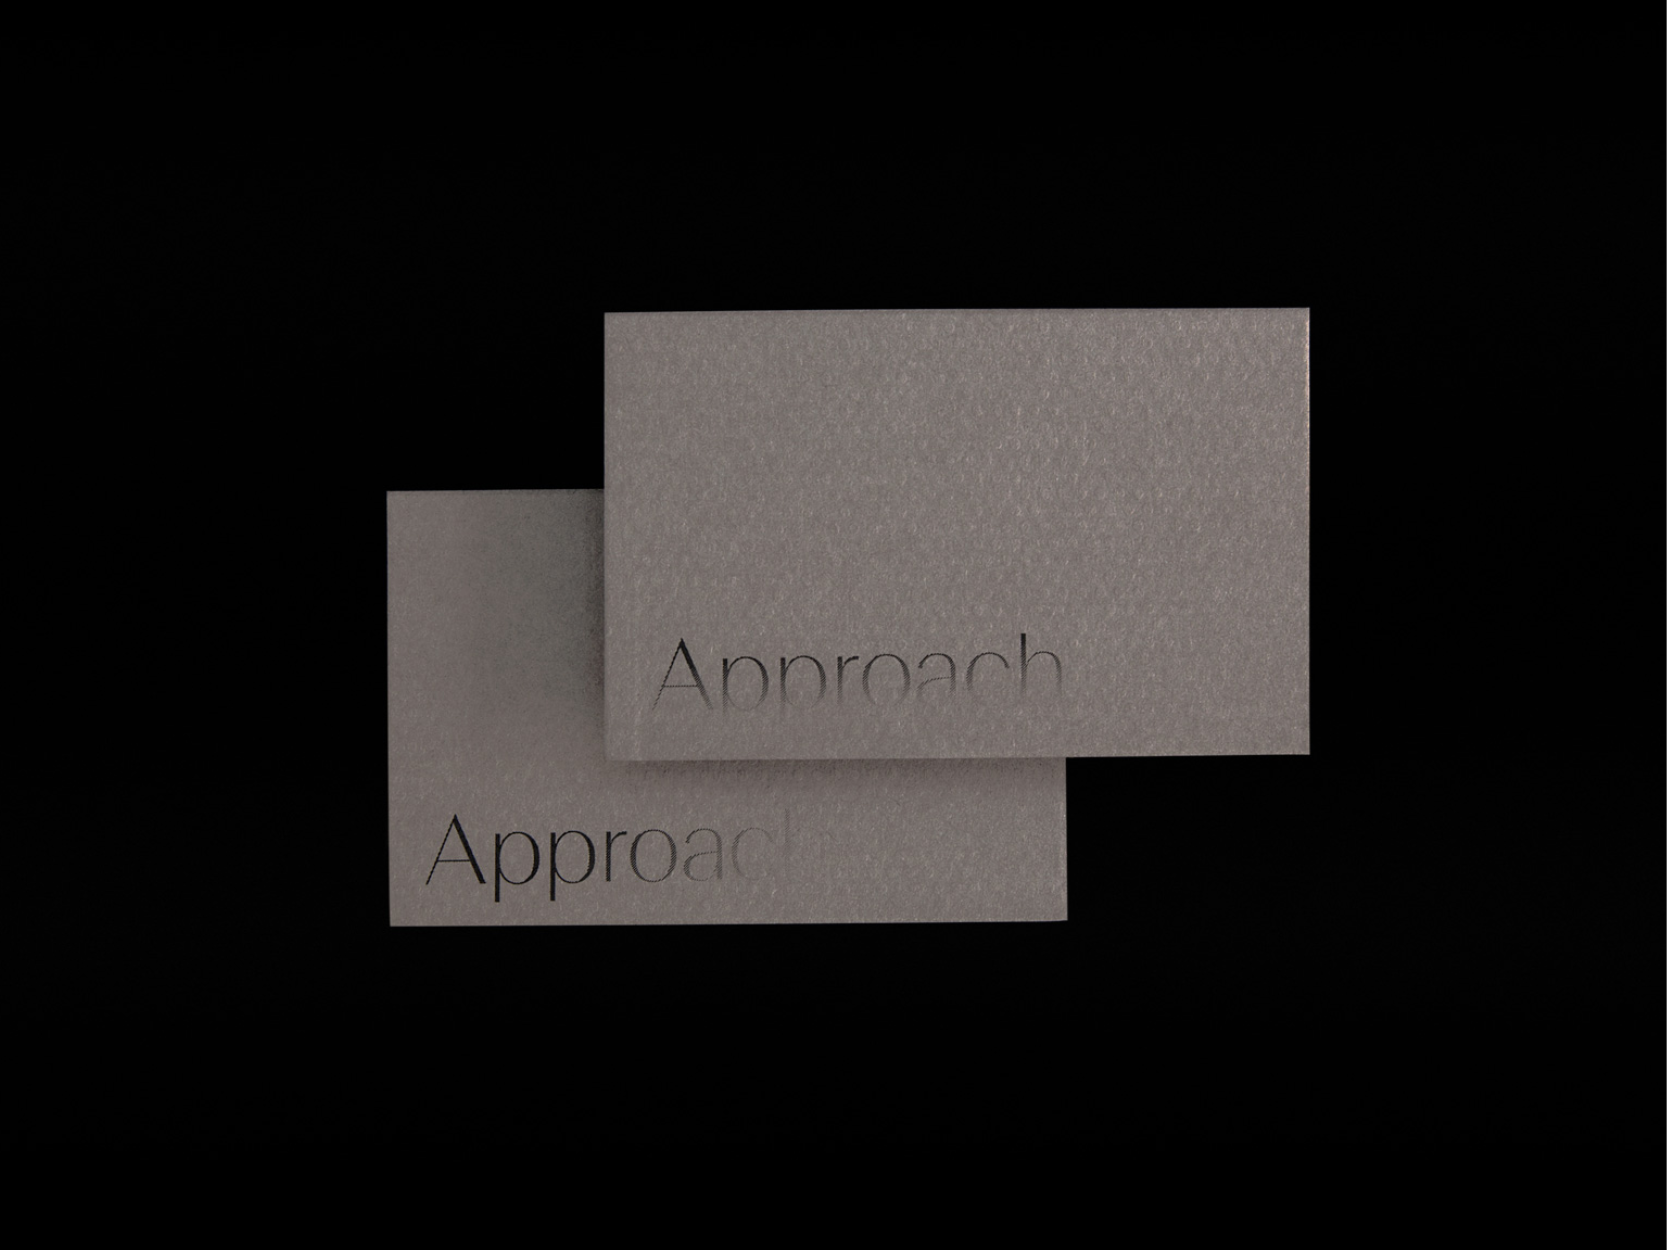 Approach_images4